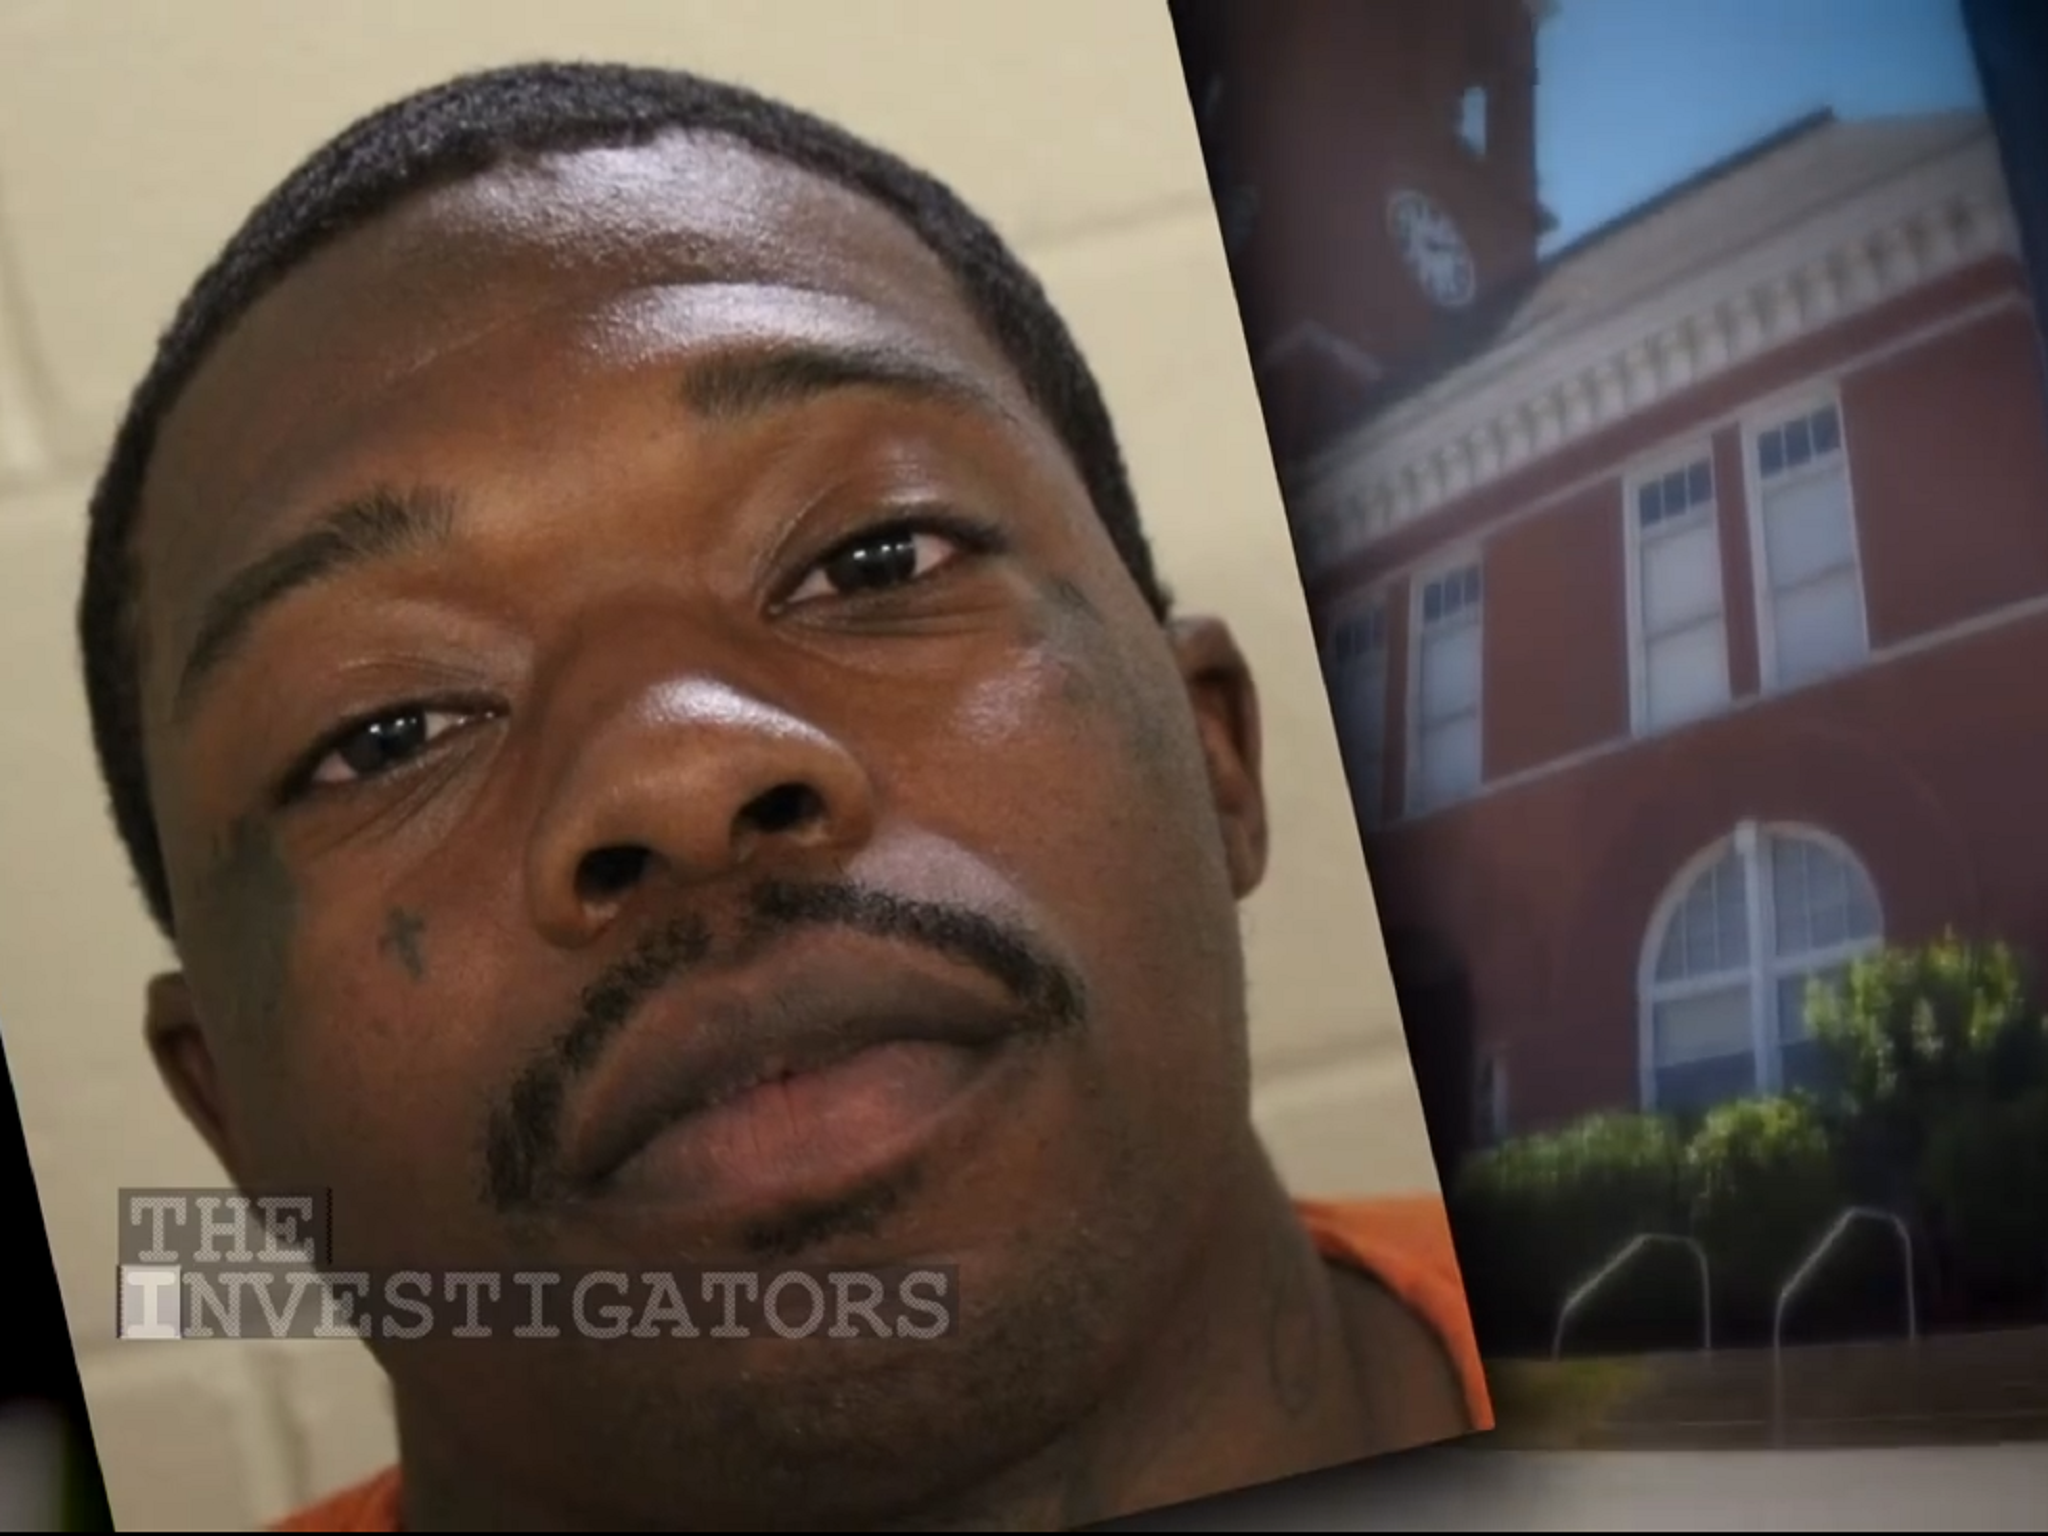 Black man will spend six years in Georgia prison despite jury finding him 'not guilty'